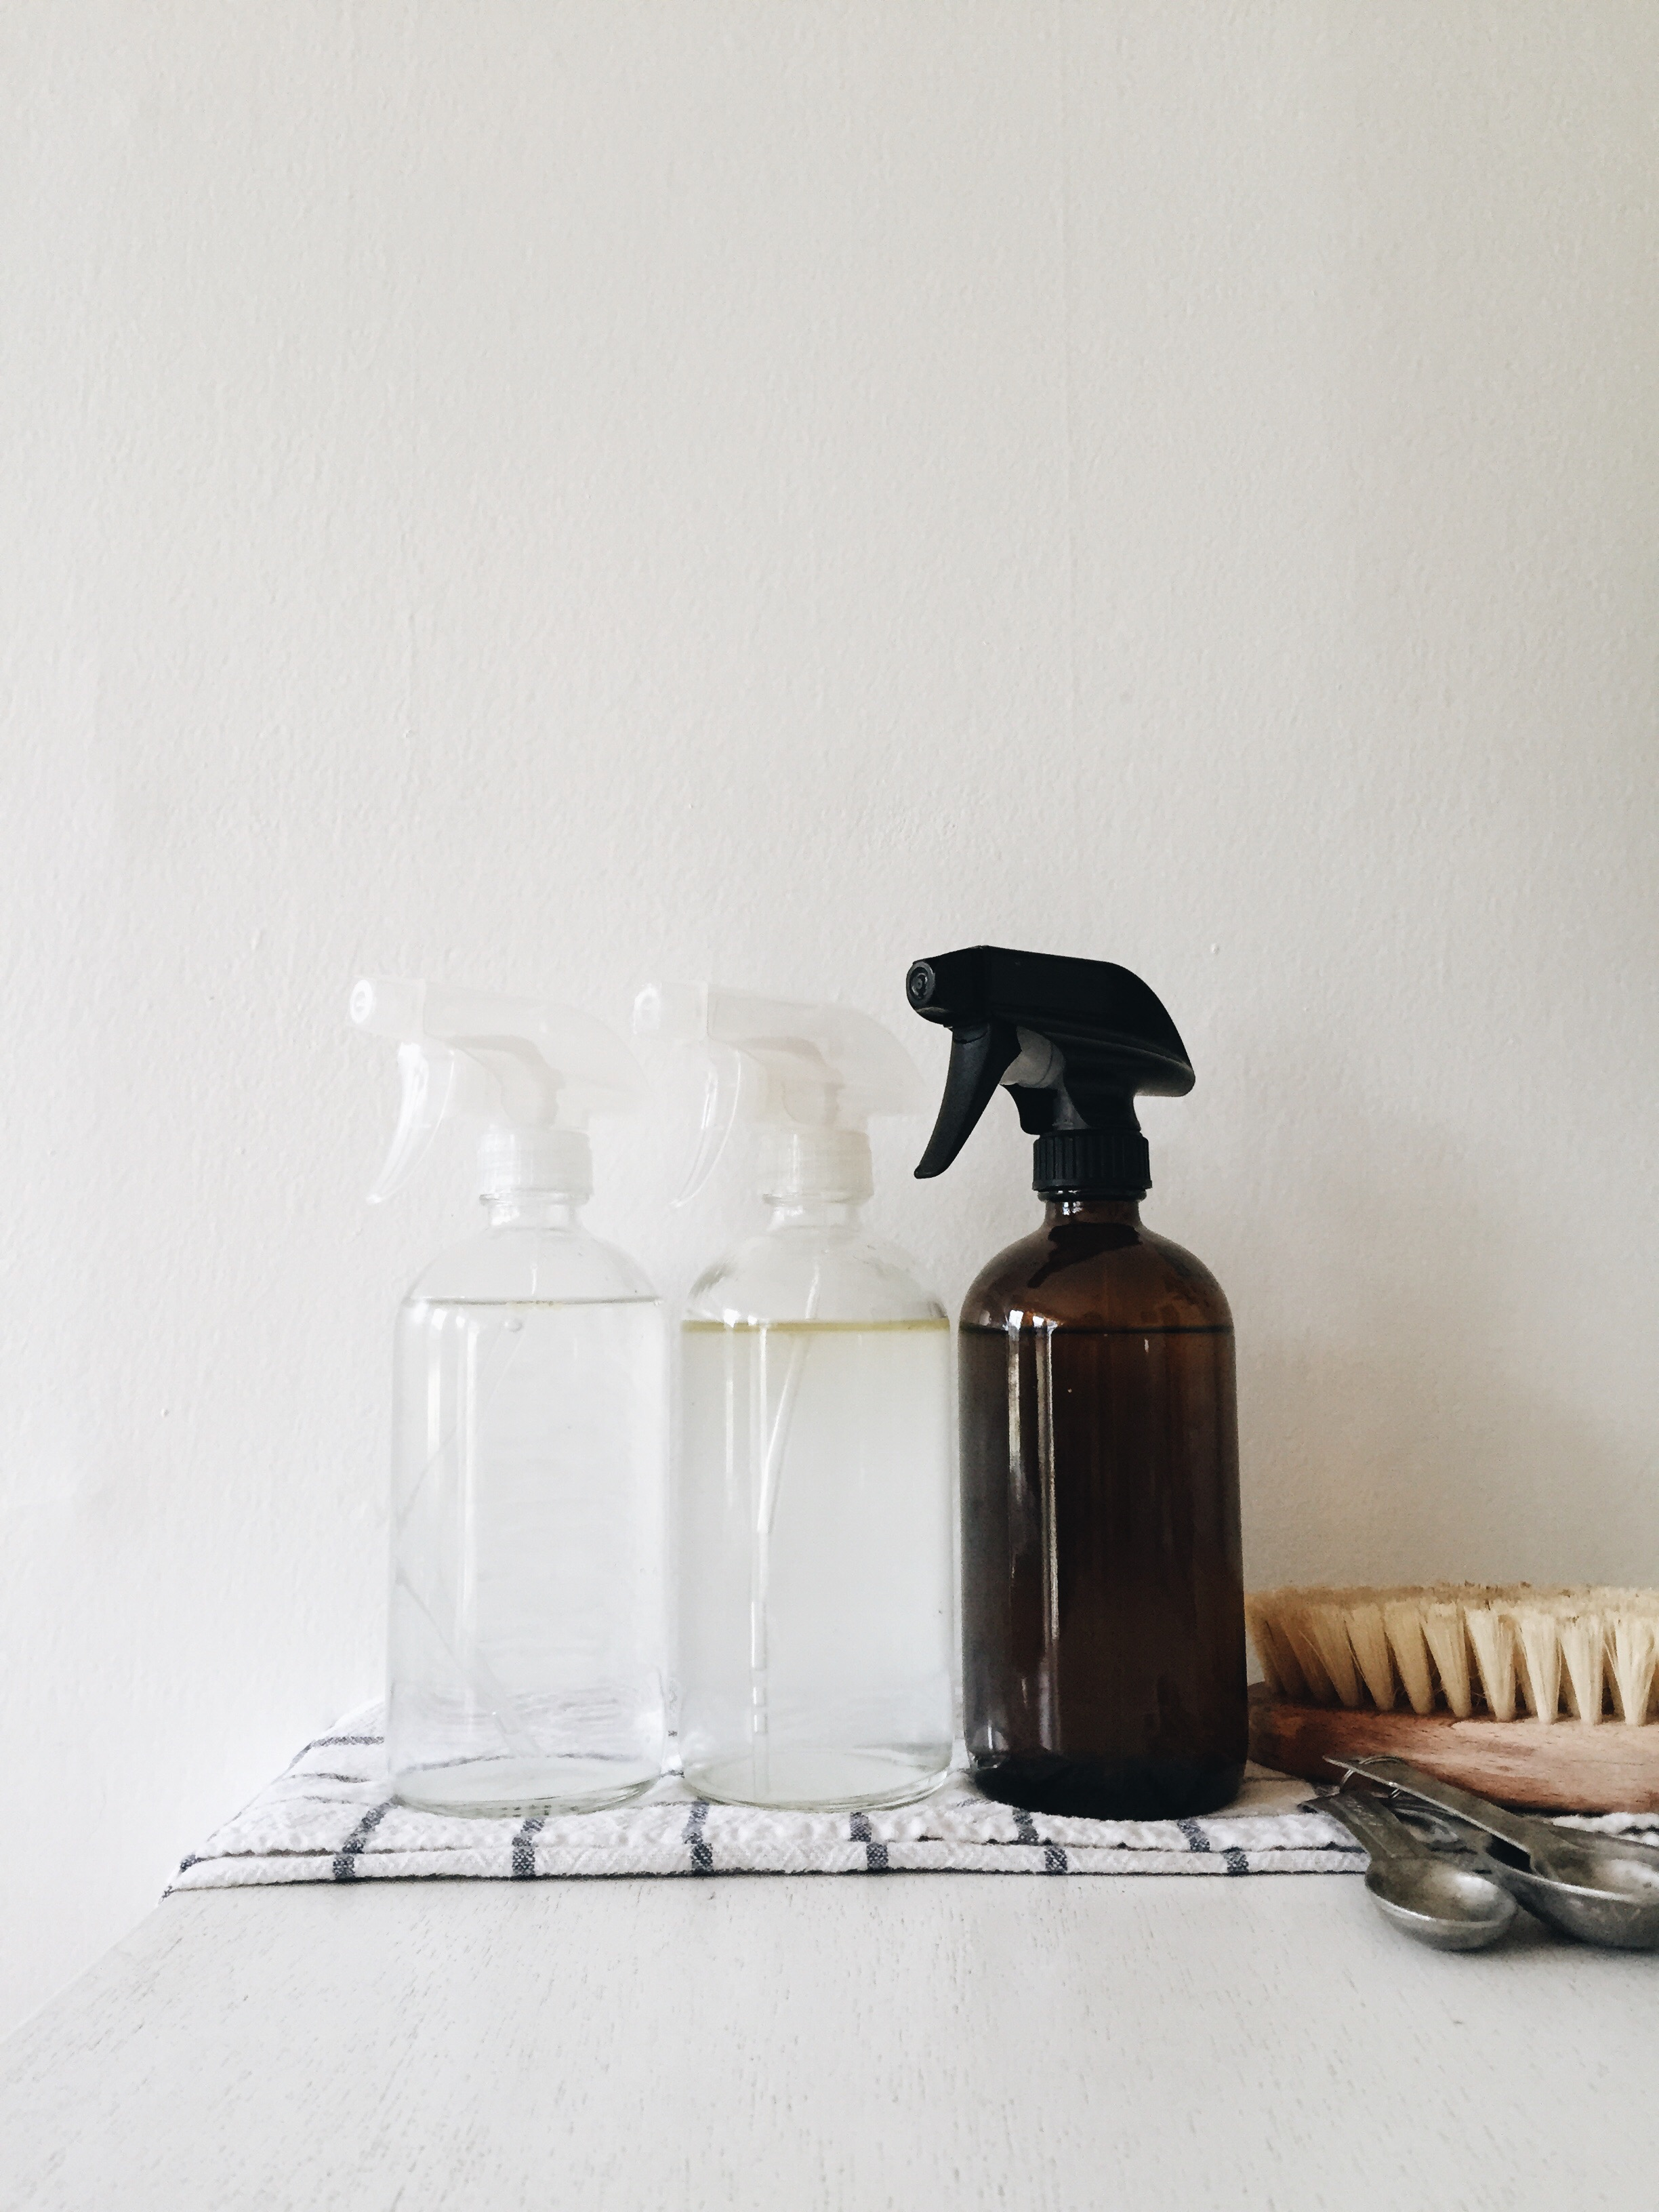 Diy Spray Cleaners And Room Spray Using Essential Oils Bev Cooks